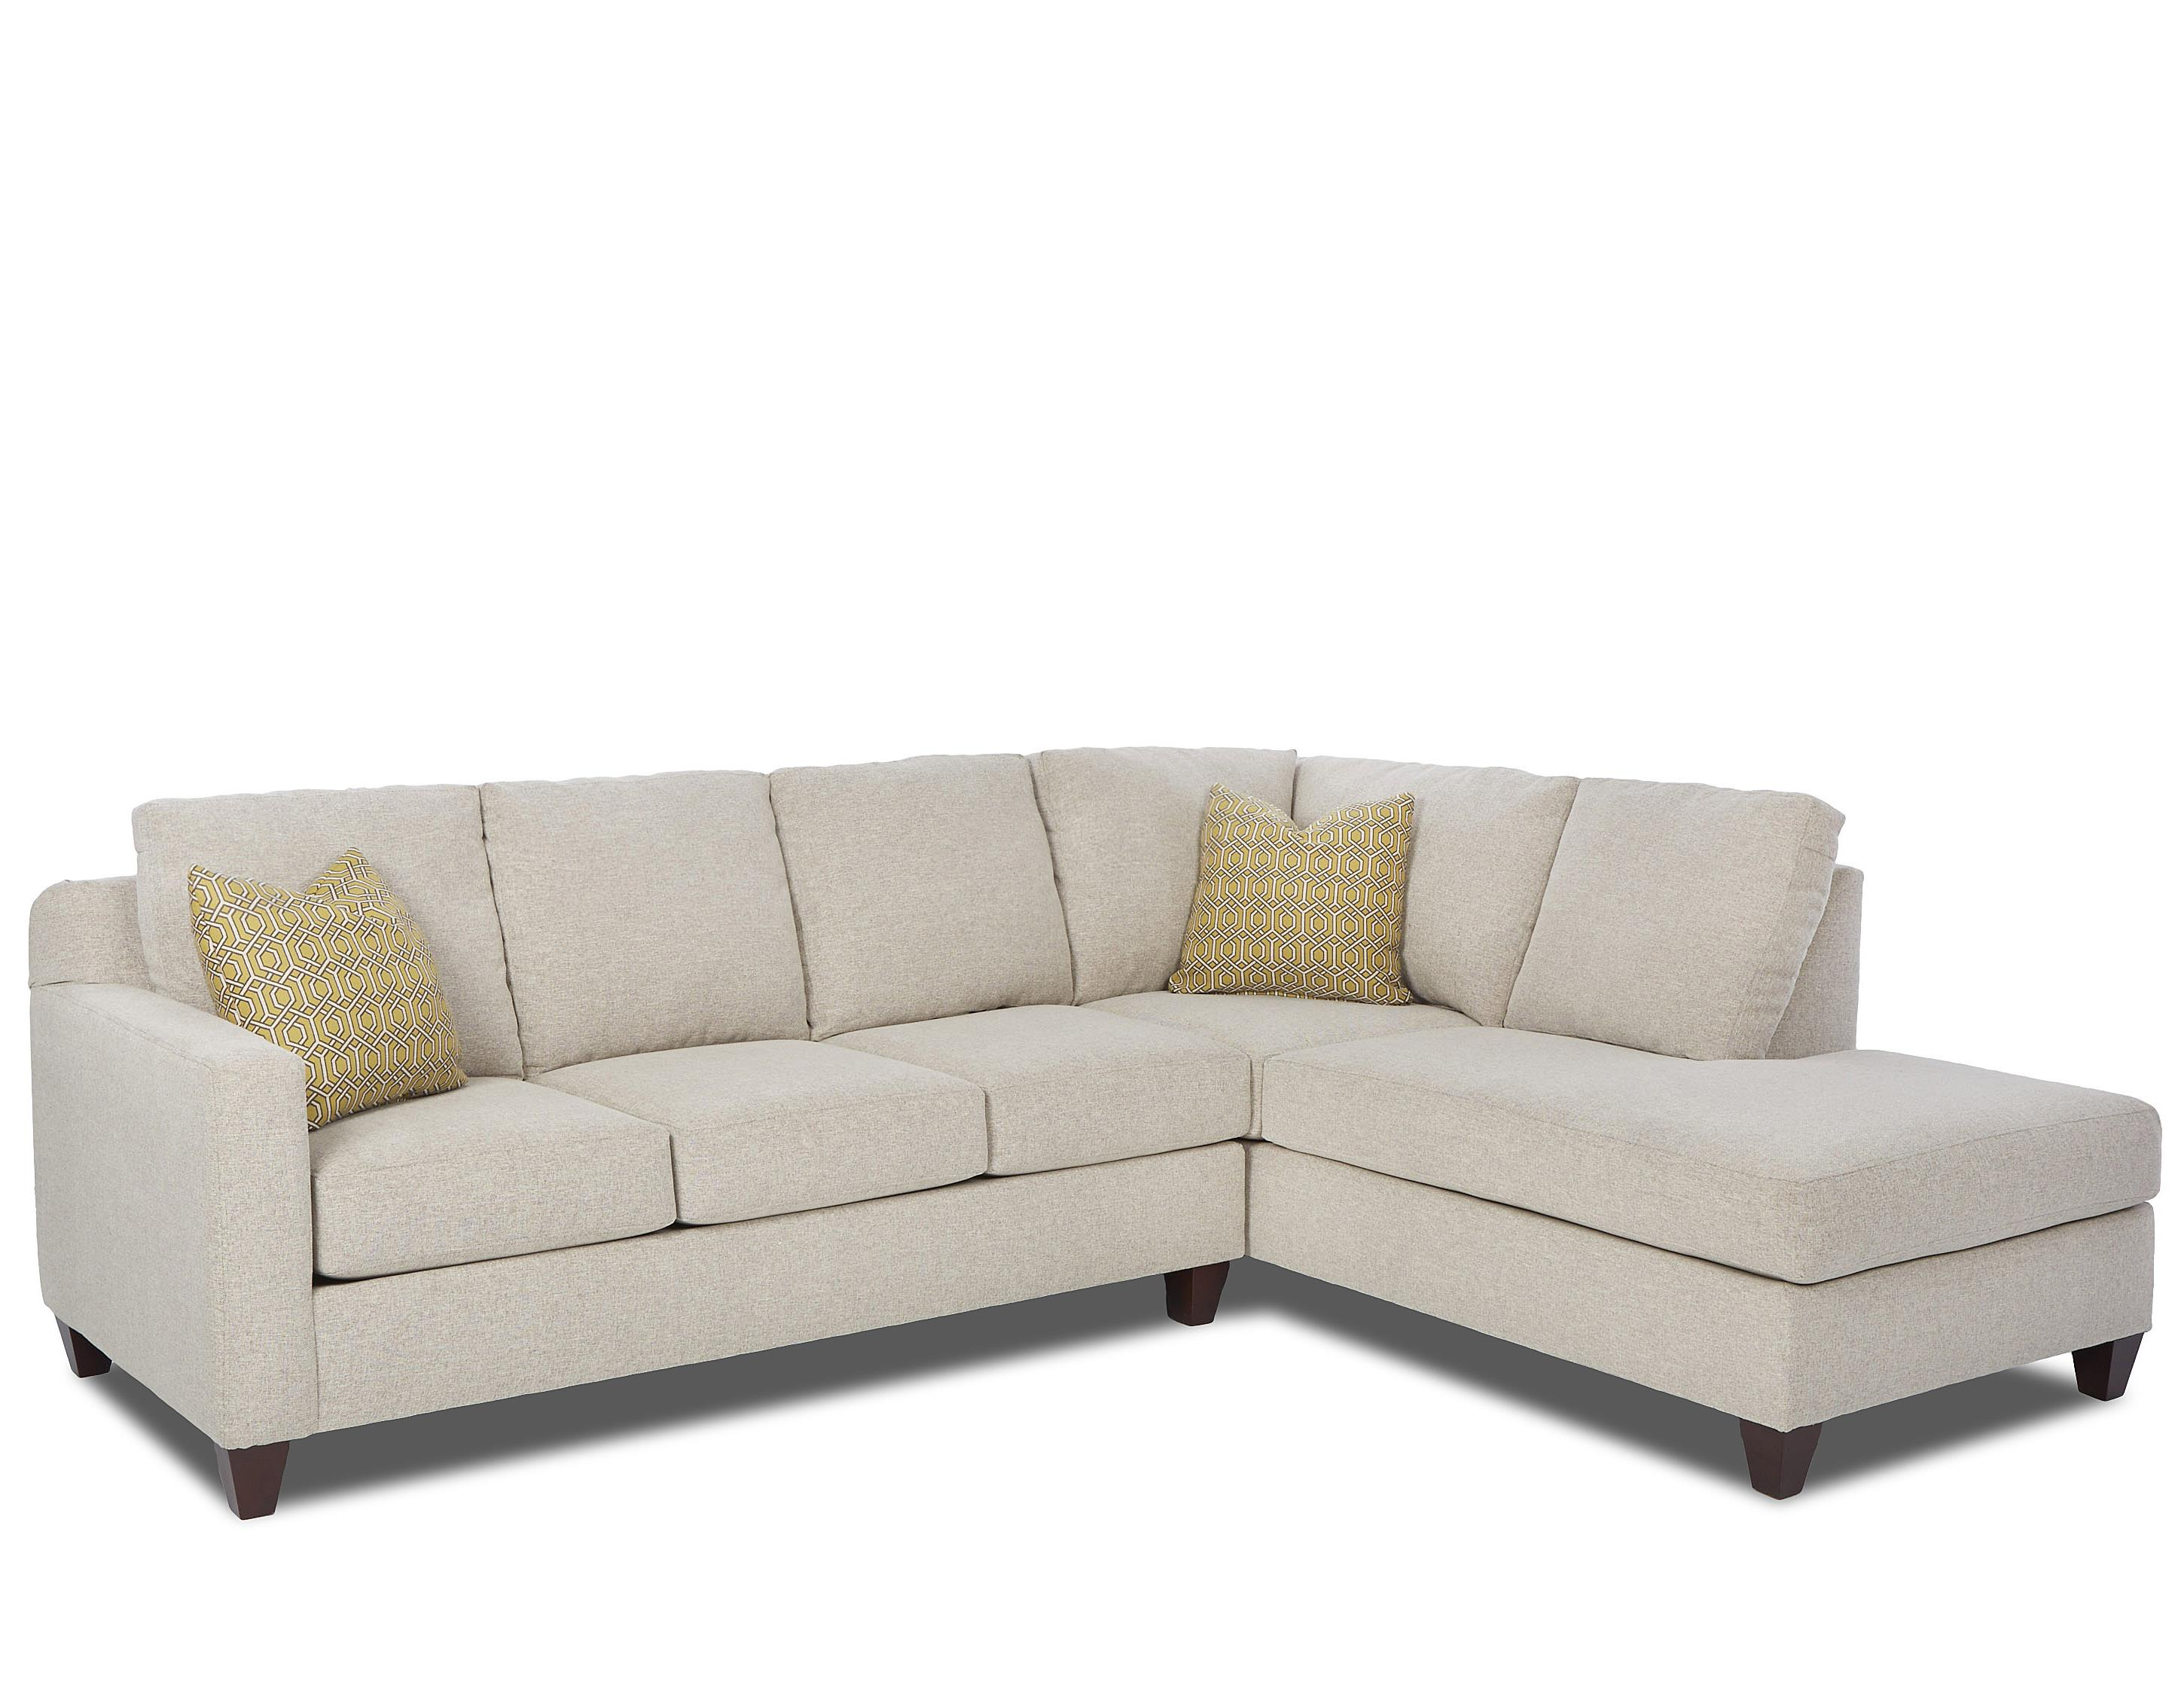 Bosco Sectional by Klaussner at Van Hill Furniture